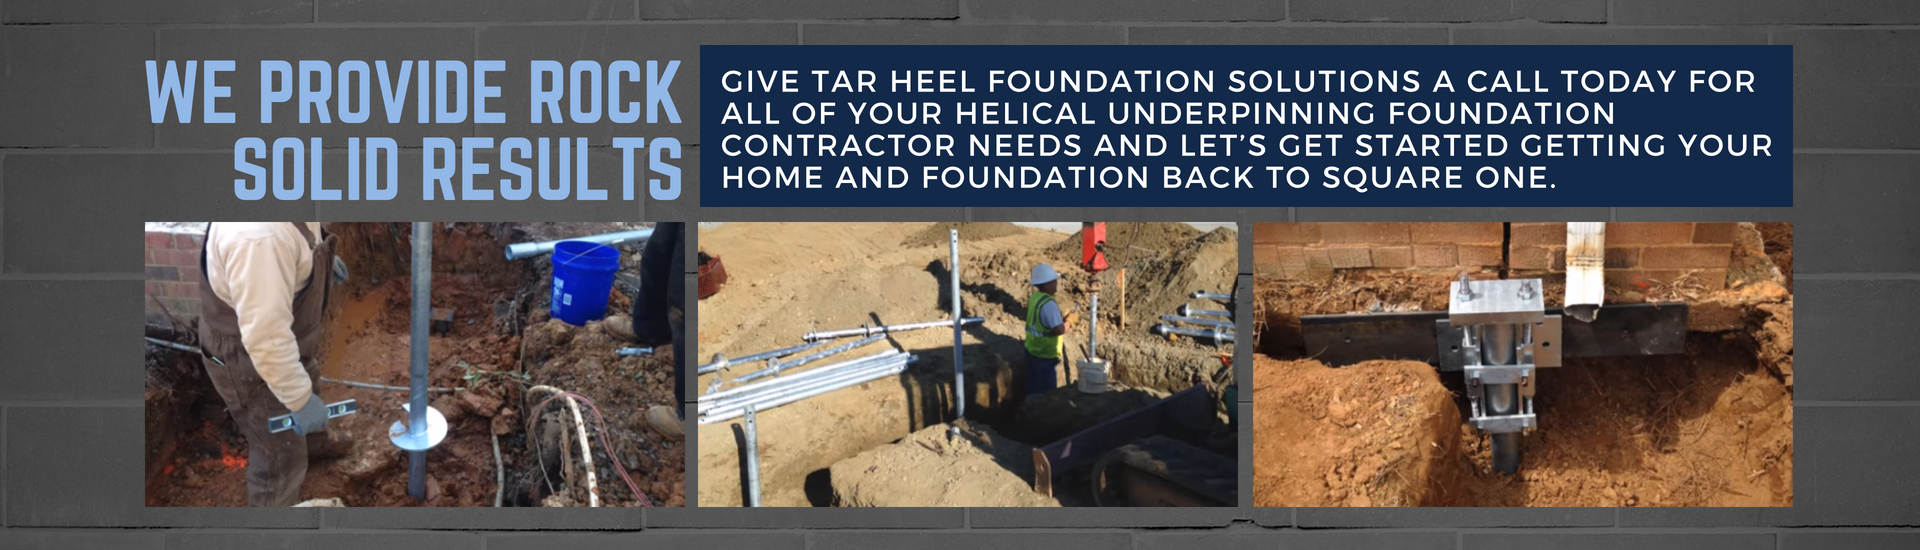 tar heel foundation solutions banner